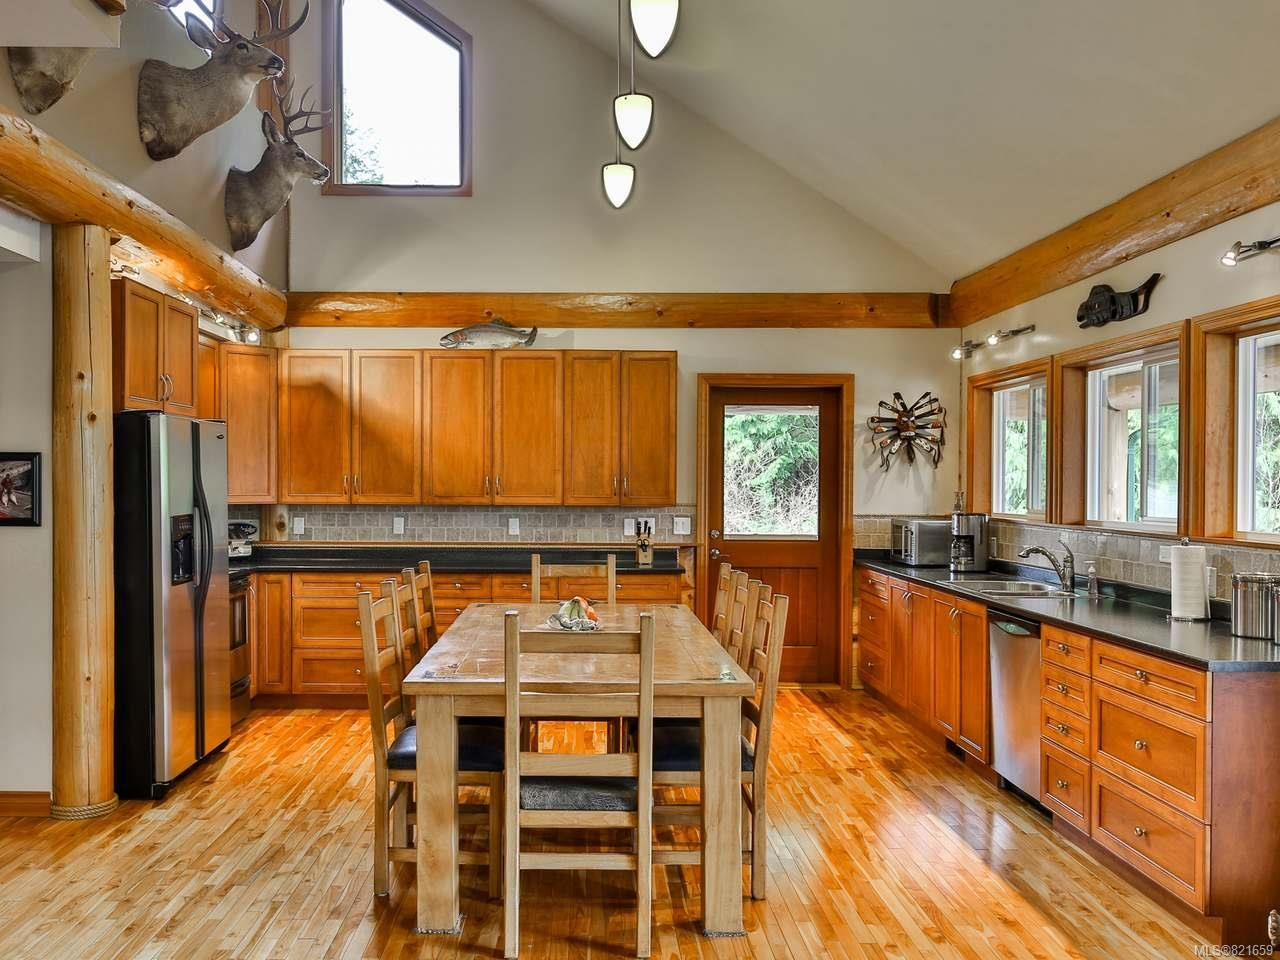 Photo 14: Photos: 1049 Helen Rd in UCLUELET: PA Ucluelet House for sale (Port Alberni)  : MLS®# 821659